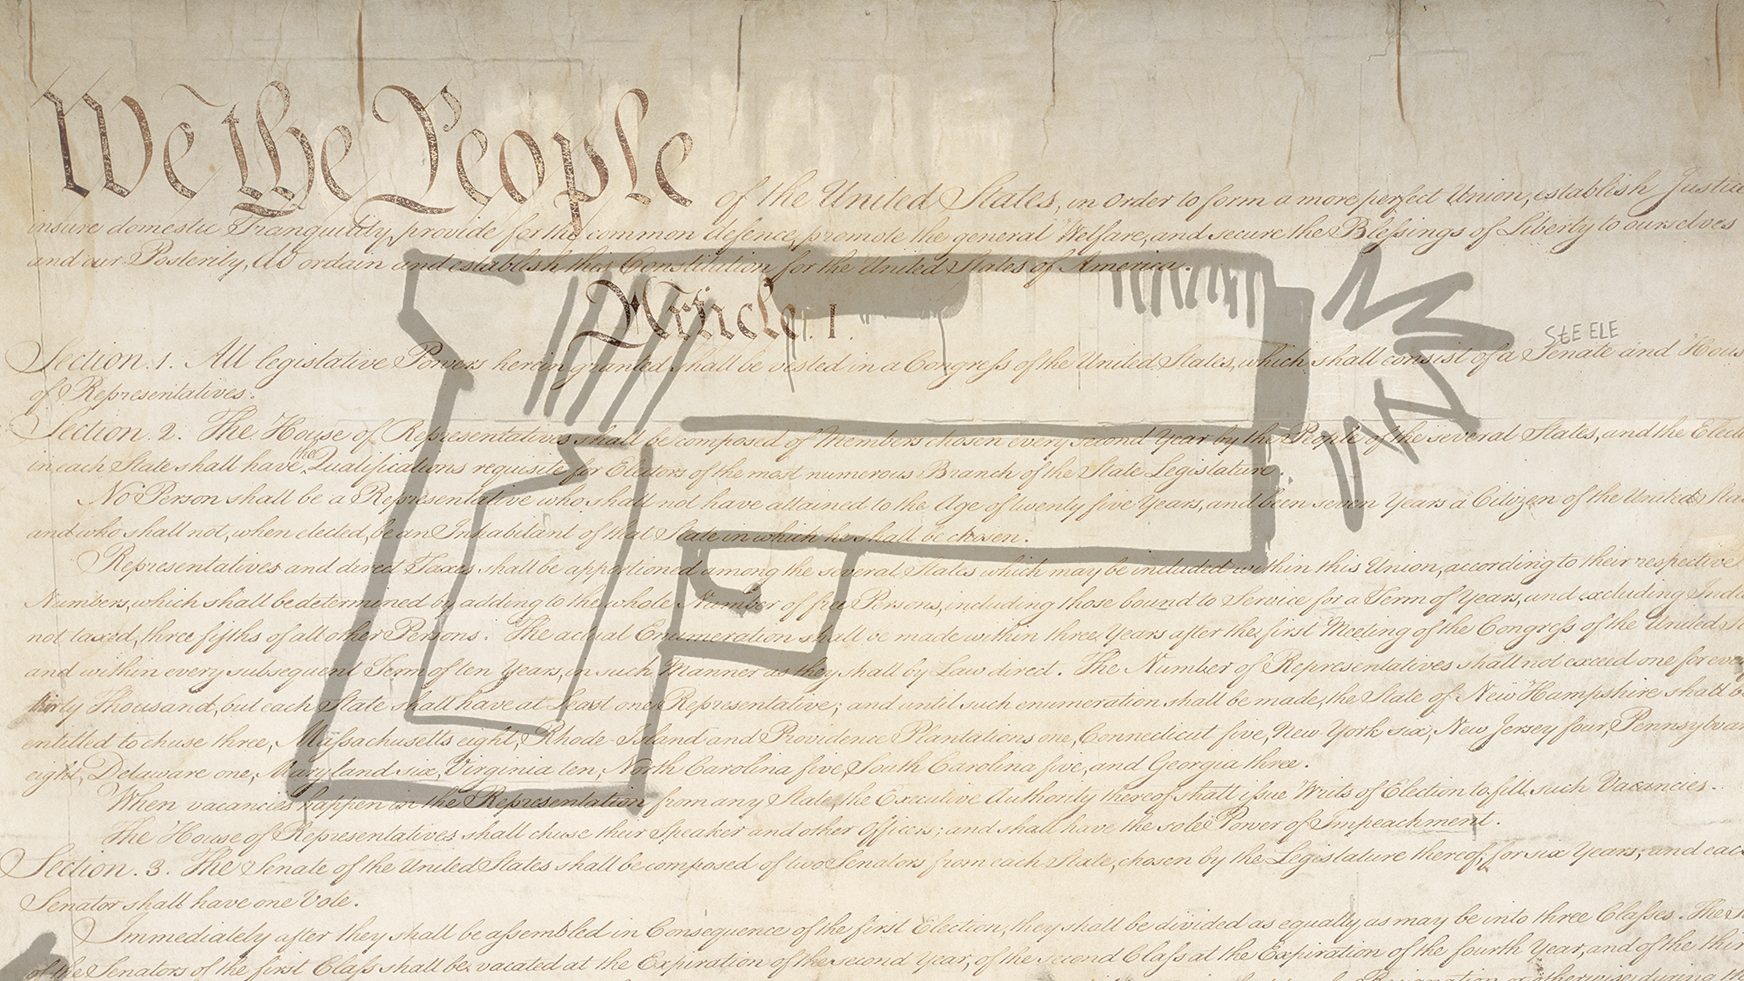 On Gun Control, We're Missing the Forest for the Trees - Acknowledging the complexity of the issue, and reinvesting in community as a value, are necessary steps in resolving our uniquely American problem.by Jenn Gilgan